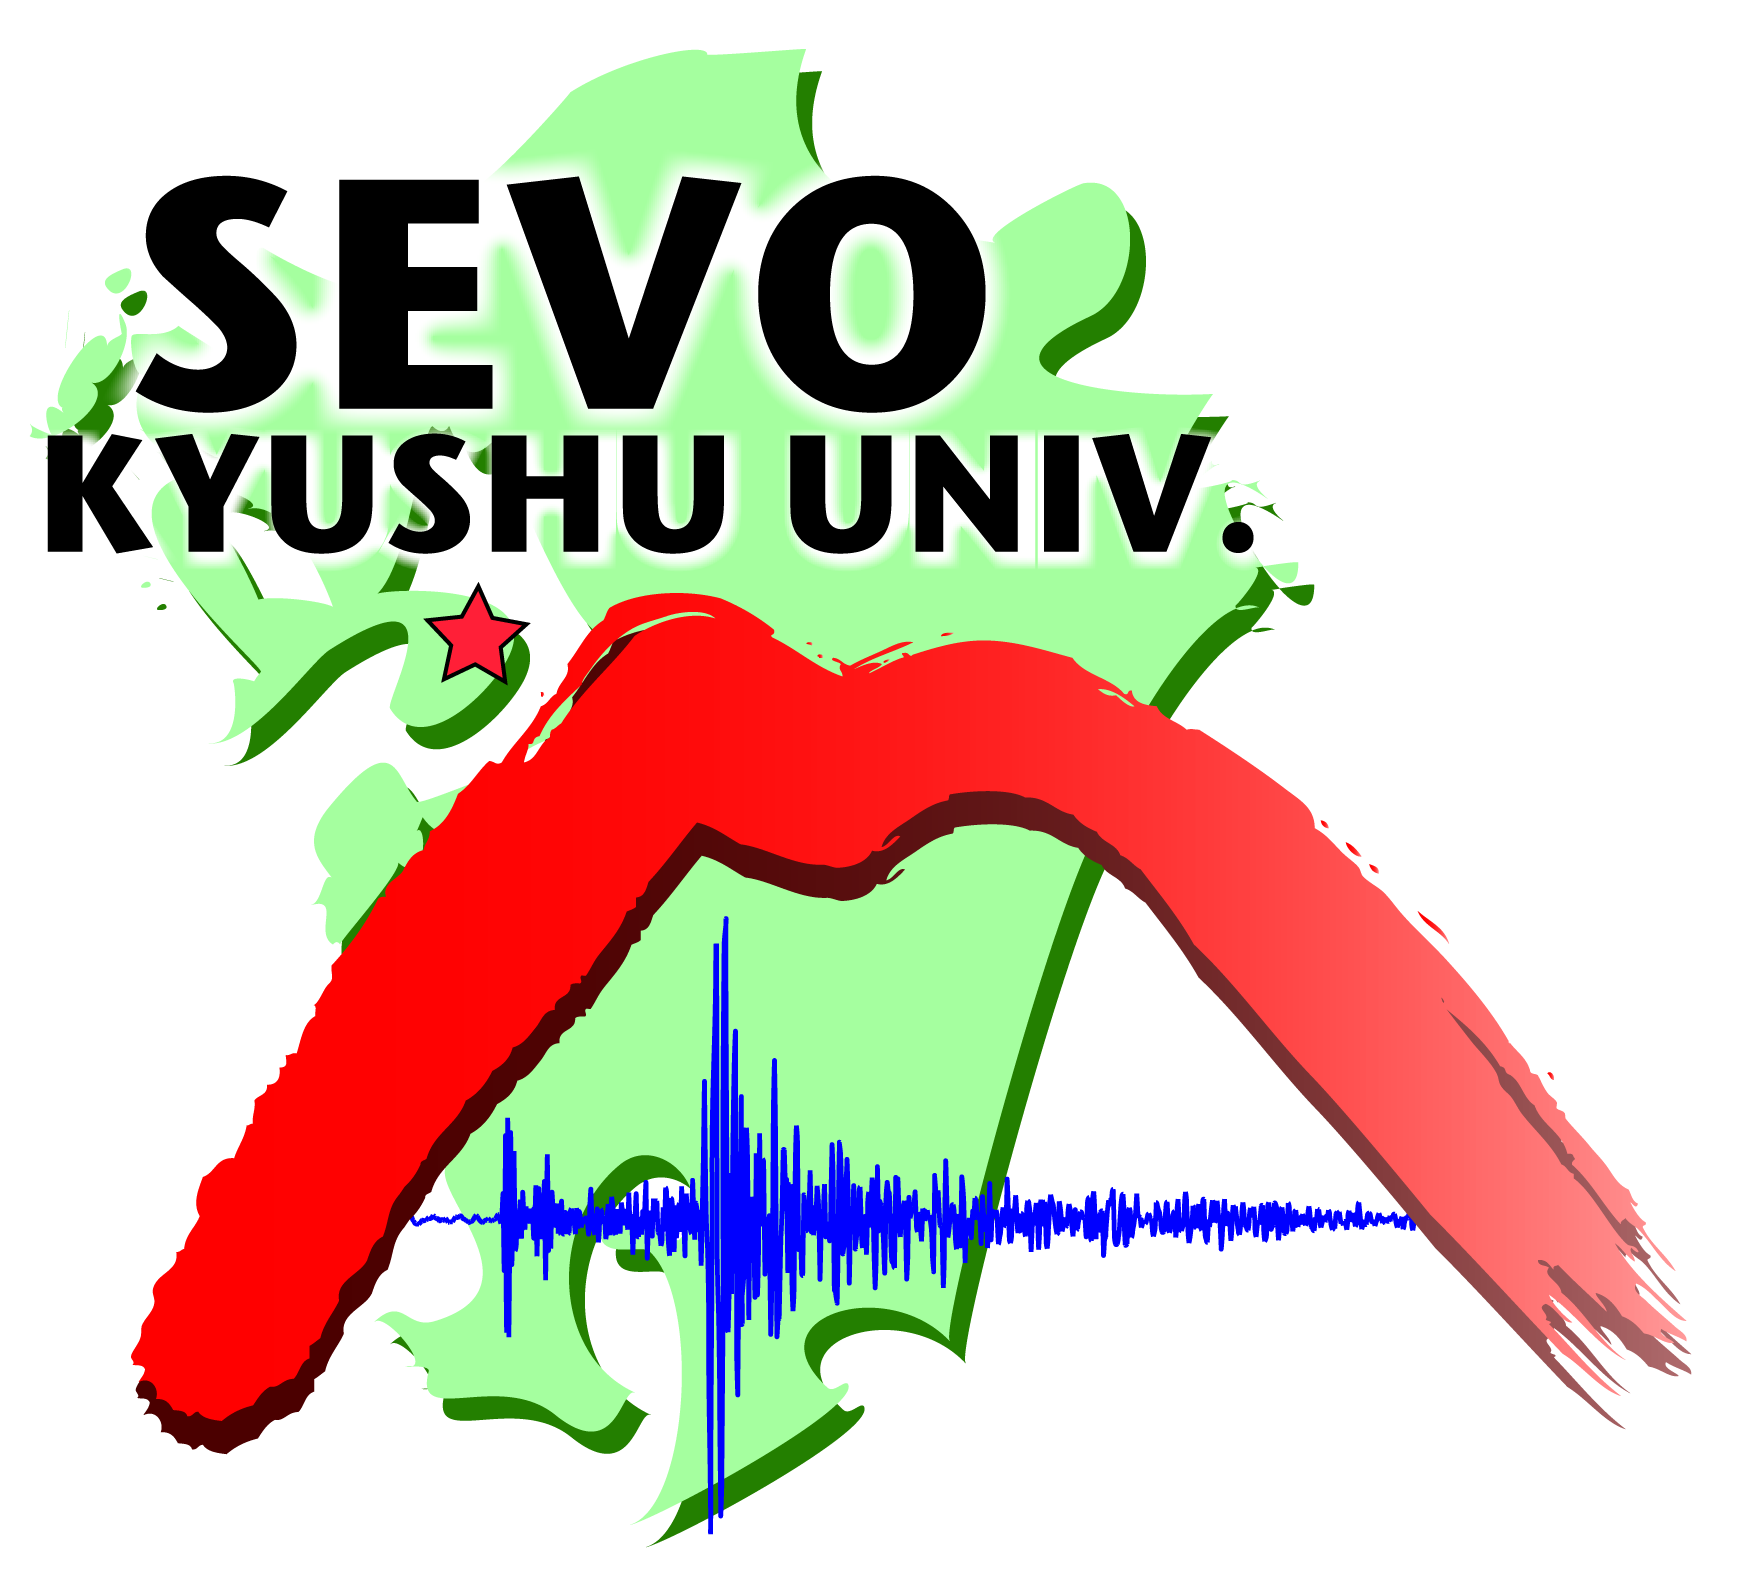 Earthquake clipart earthquake seismograph. Institute of seismology and